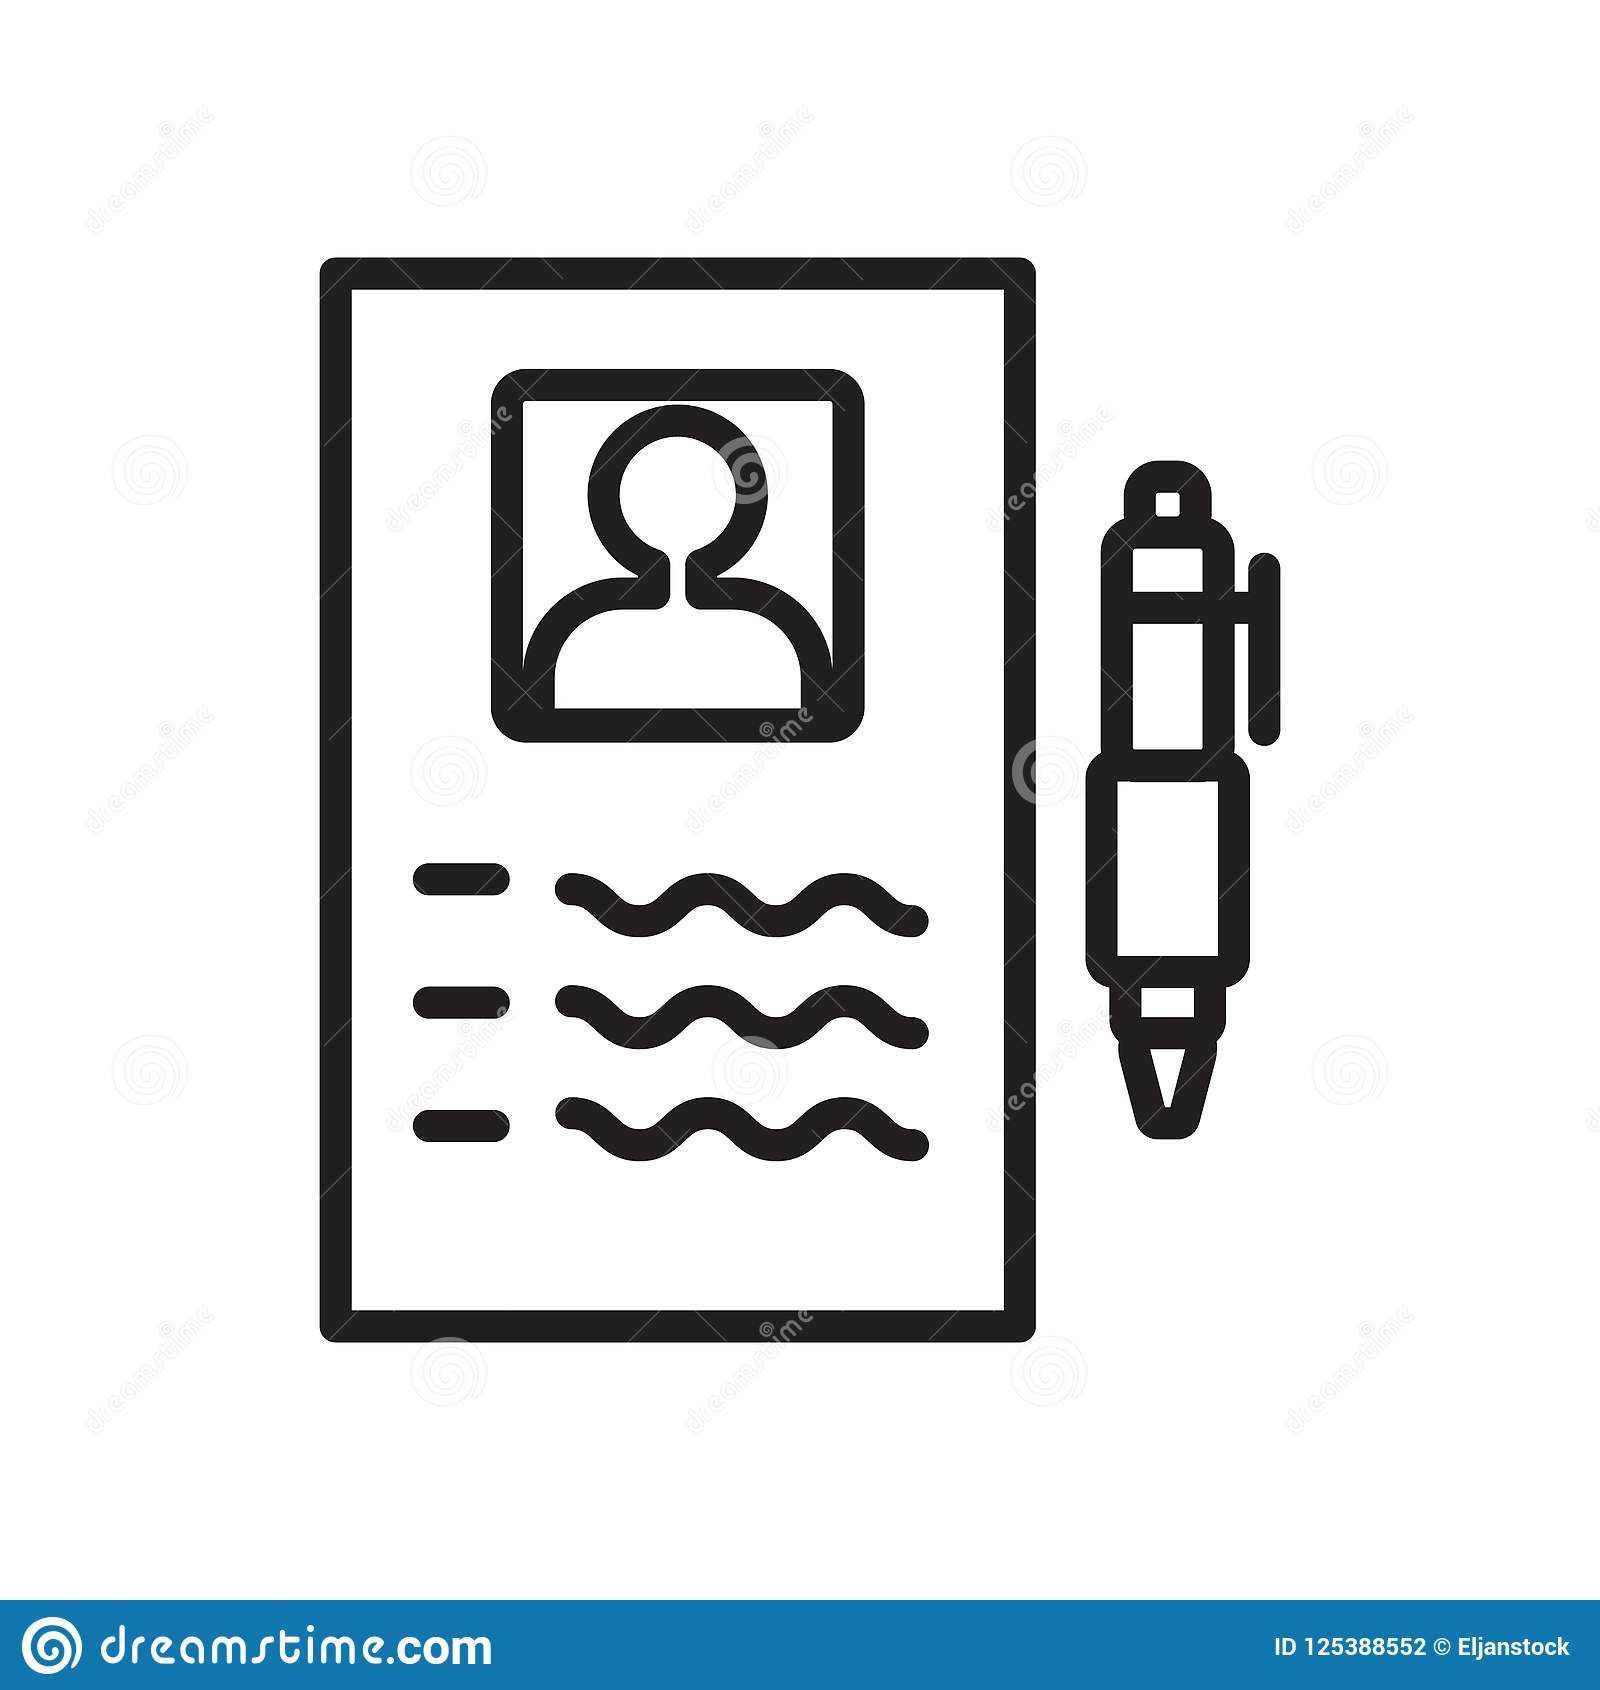 resume icon vector isolated on white background, resume sign stock